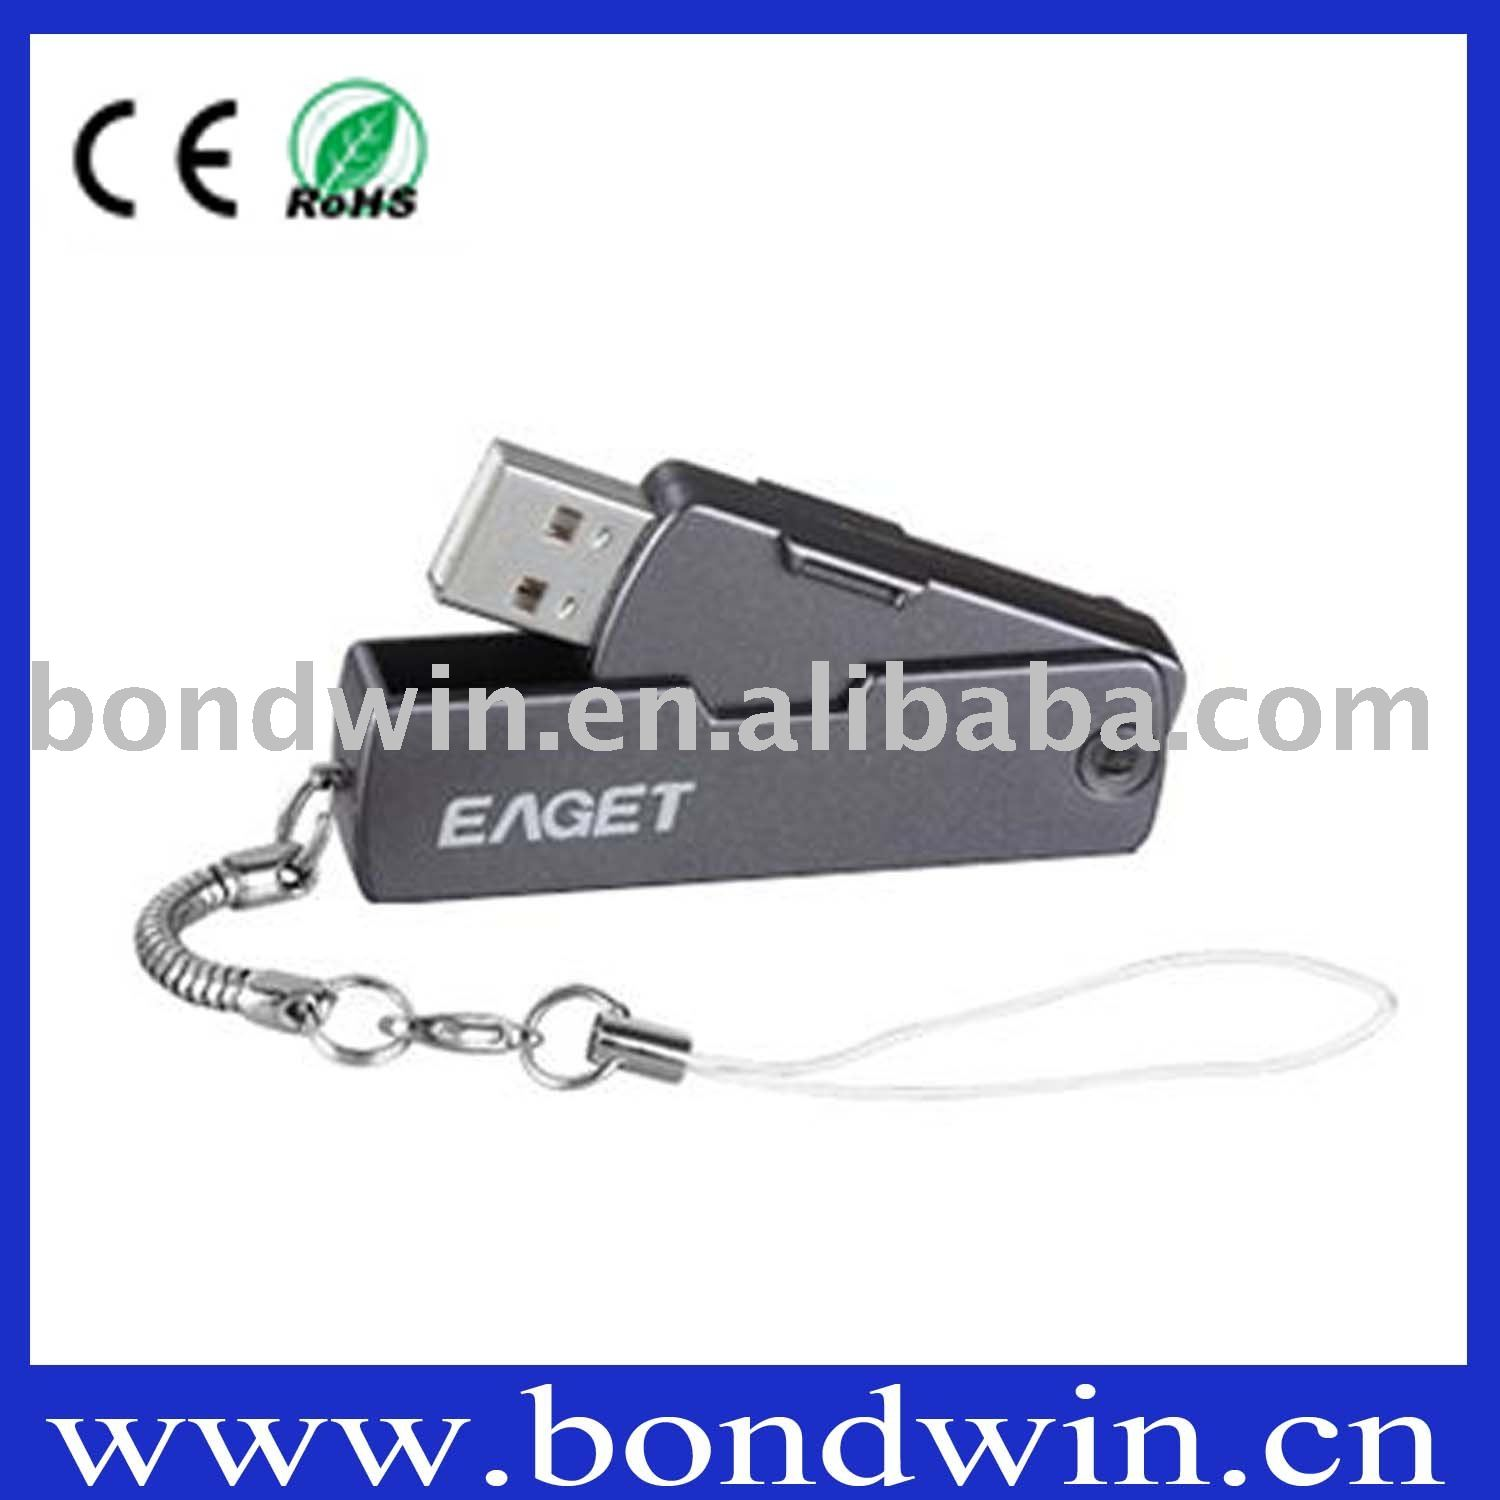 hot sale! 2gb metal usb flash disk/usb flash drive/usb momery